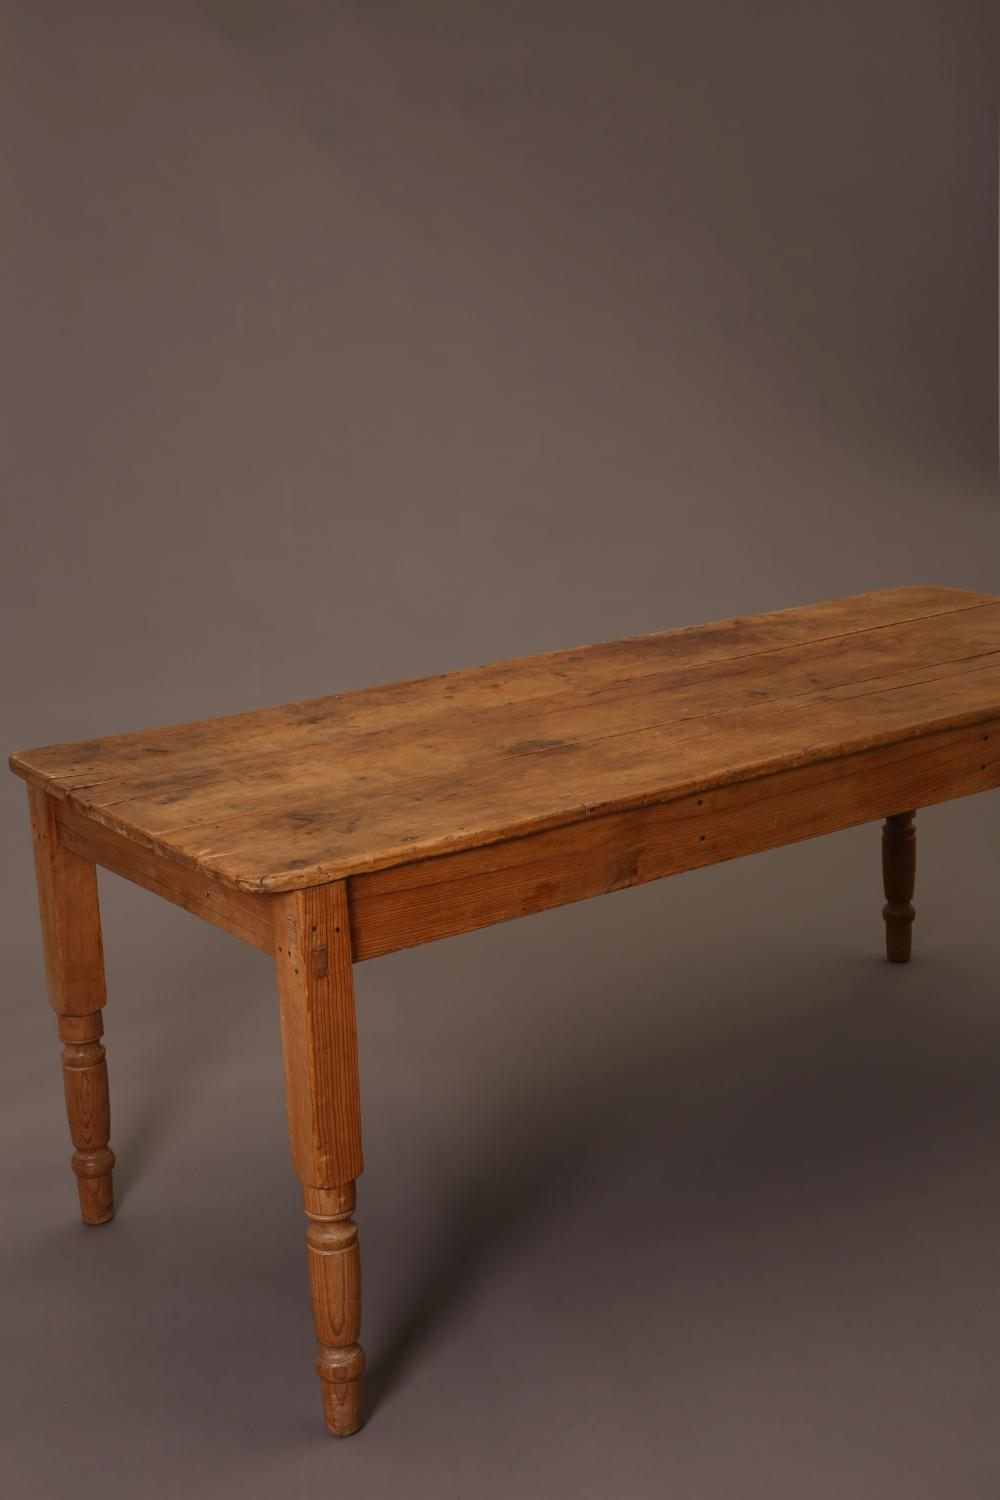 New Mexico, Large Dining Table, 20th Century